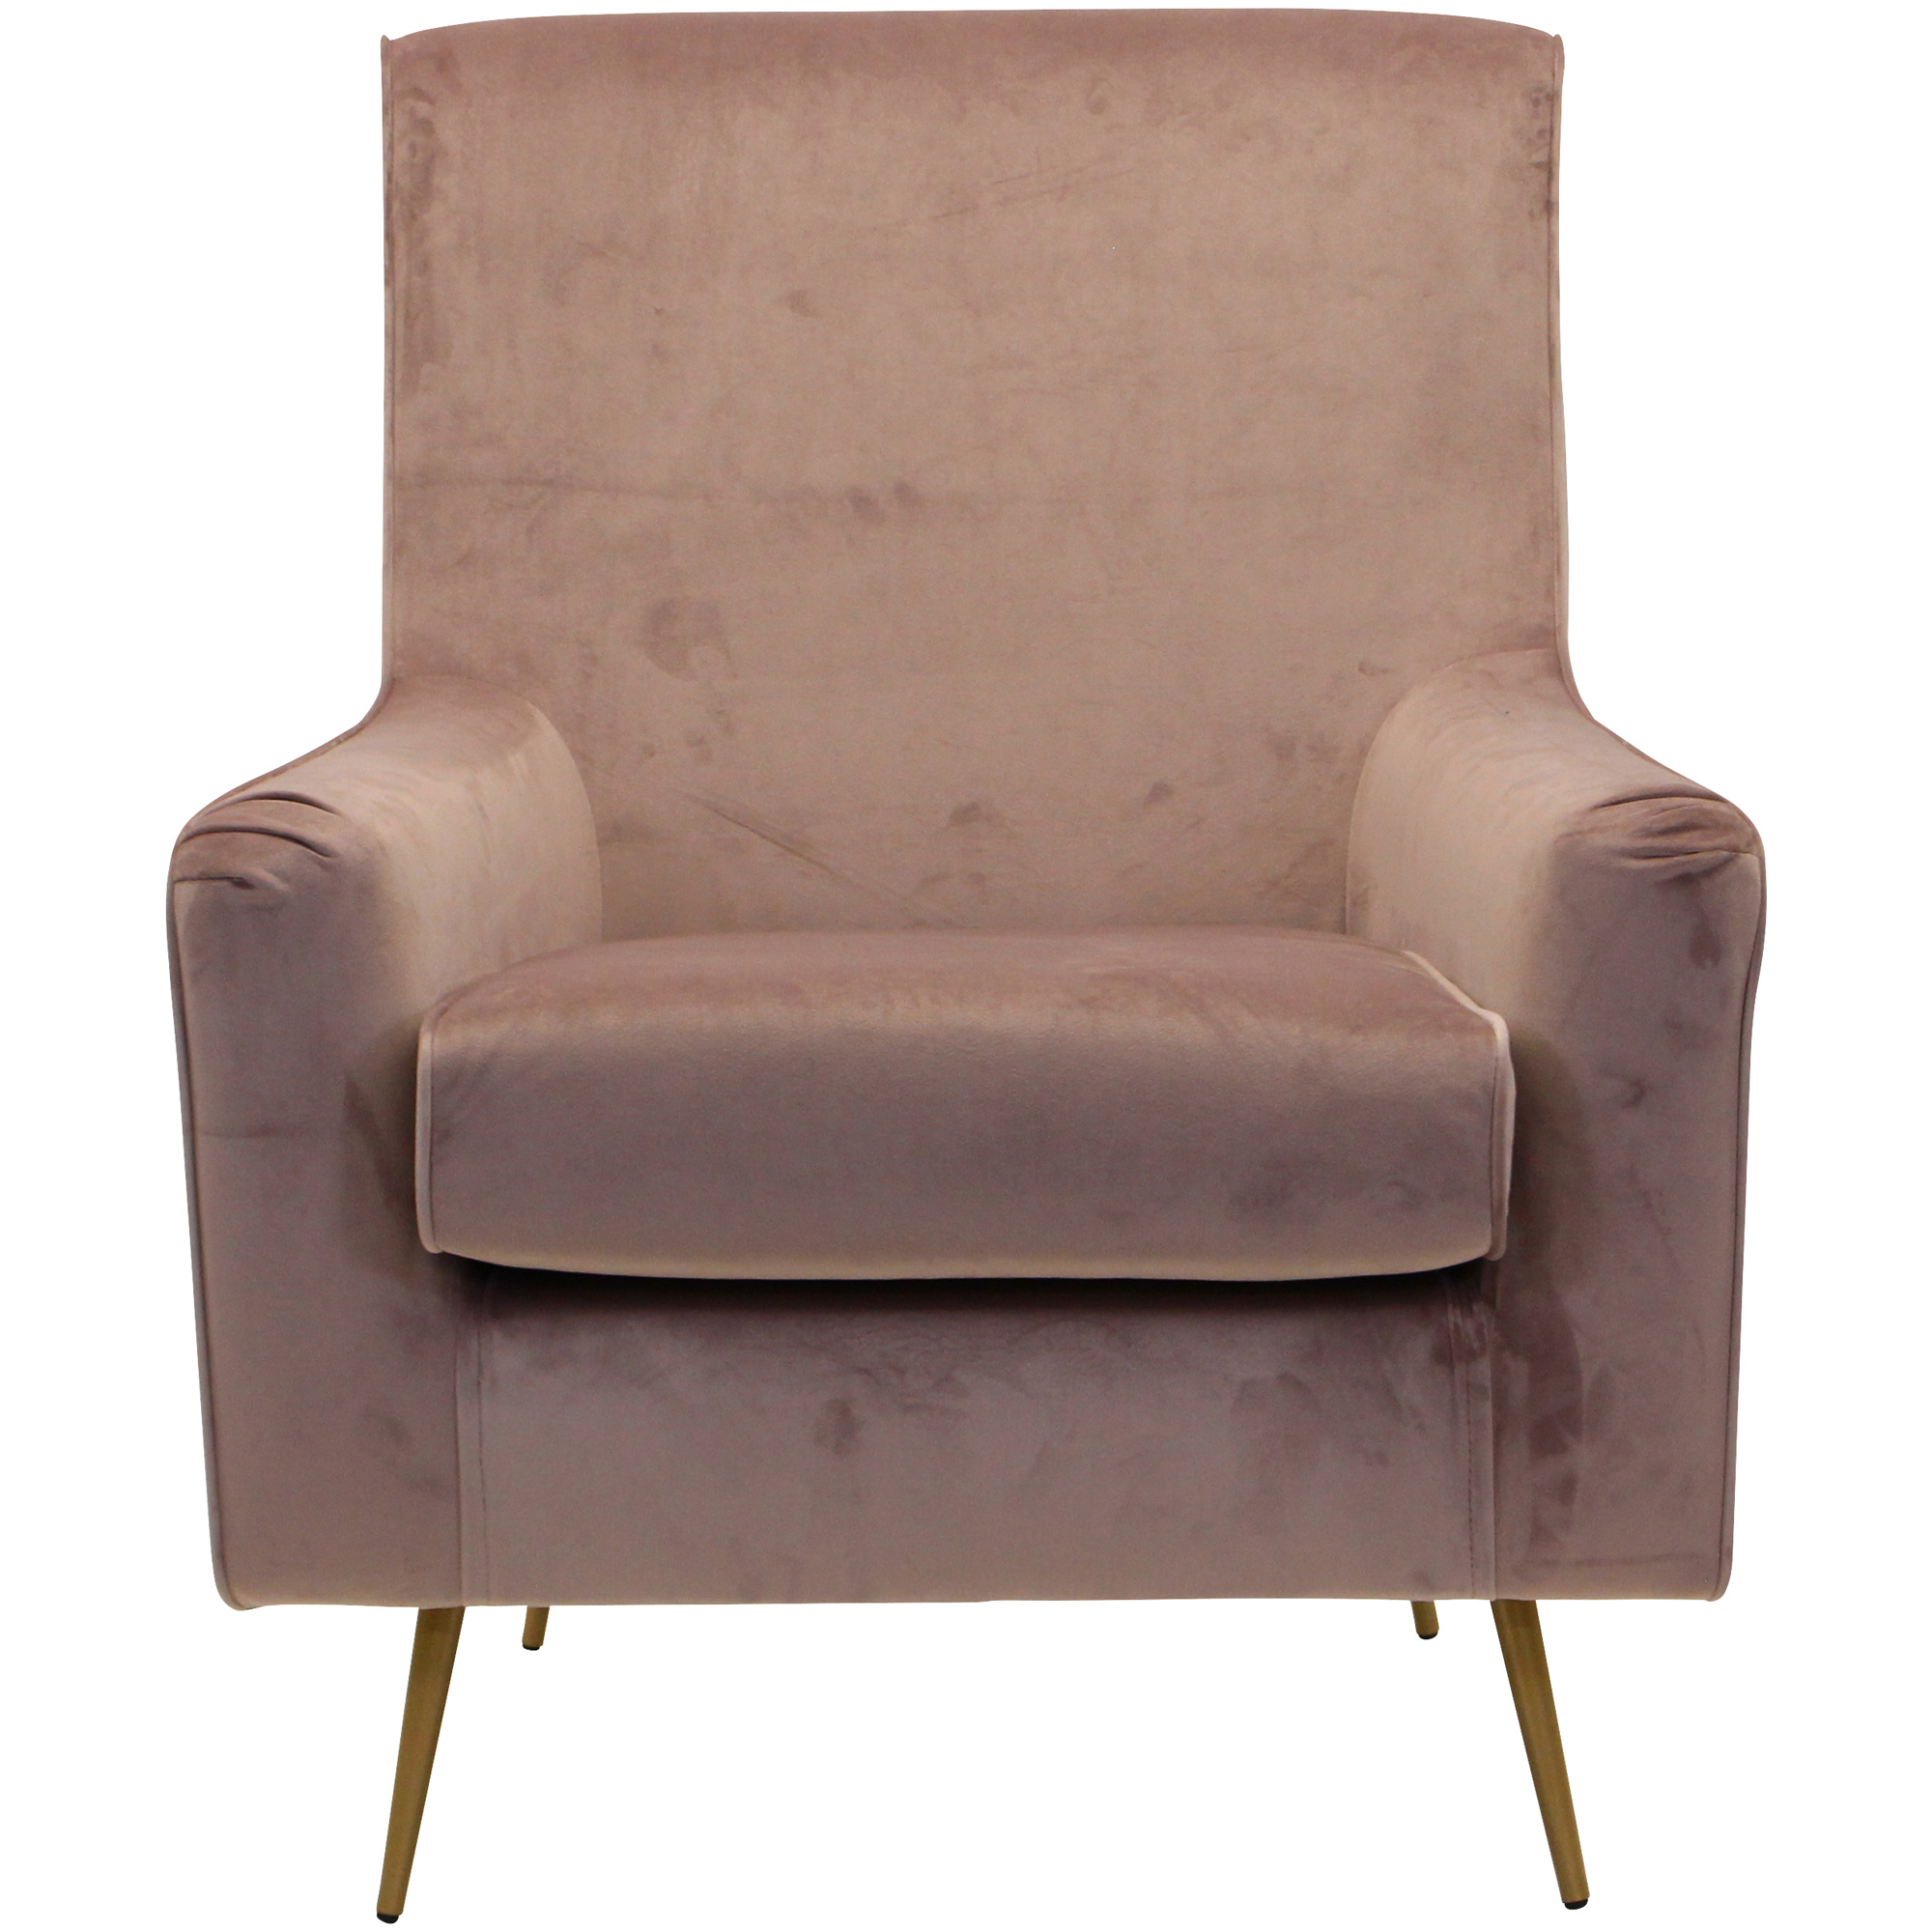 Overman | Lana Rose Accent Chair